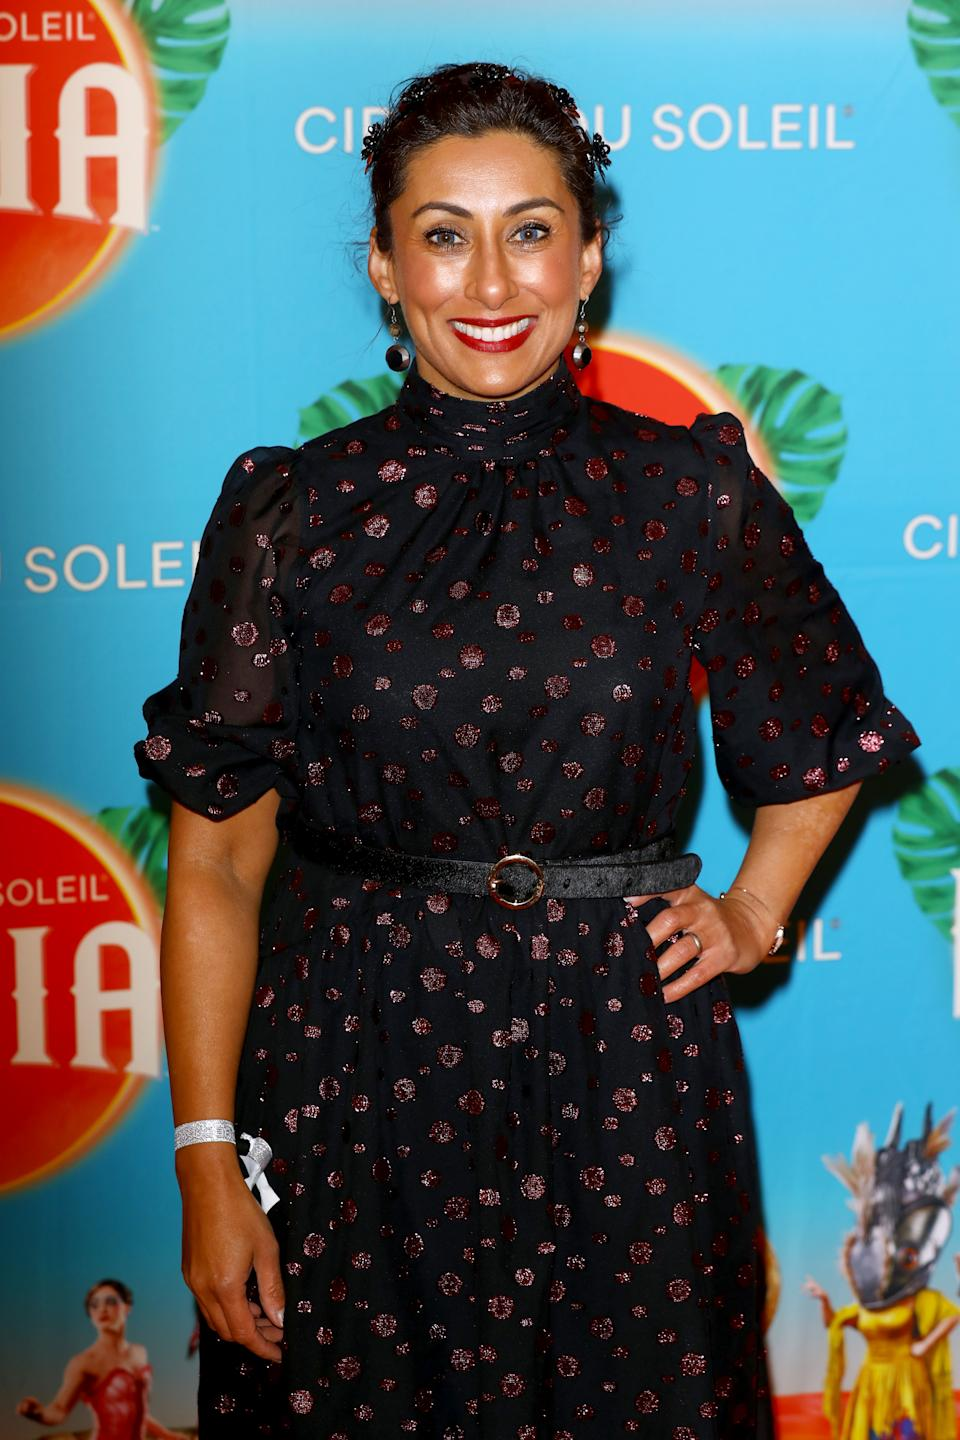 """Saira Khan attends Cirque du Soleil's """"LUZIA"""" at Royal Albert Hall on January 15, 2020 in London, England. (Photo by Tim P. Whitby/Getty Images)"""